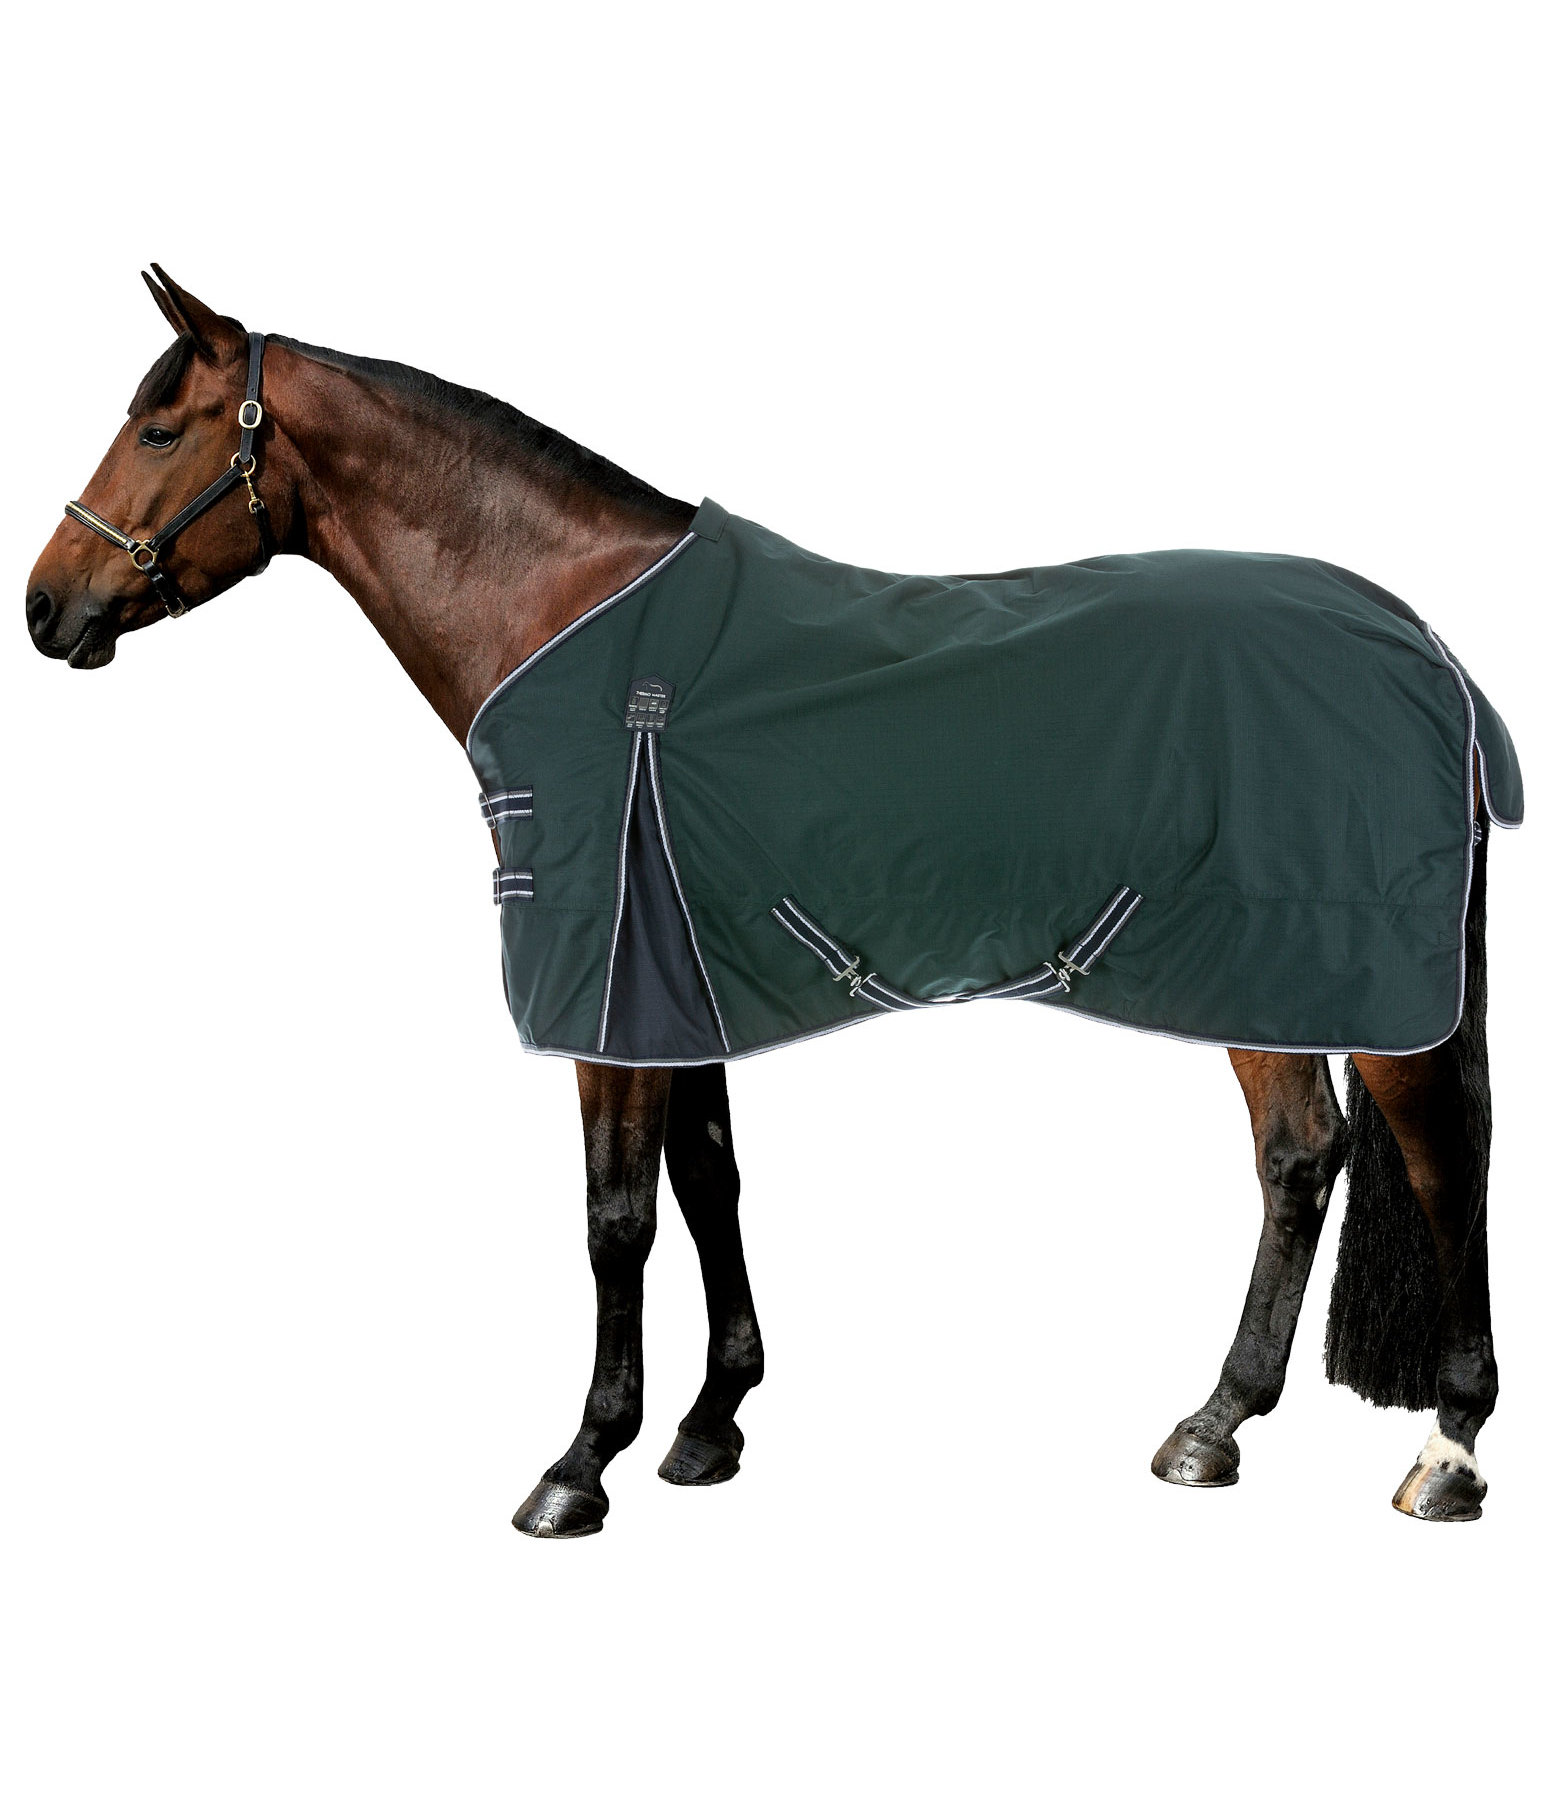 Turnout Rug Kaito With Fleece Lining And Teflon Coating, 0g